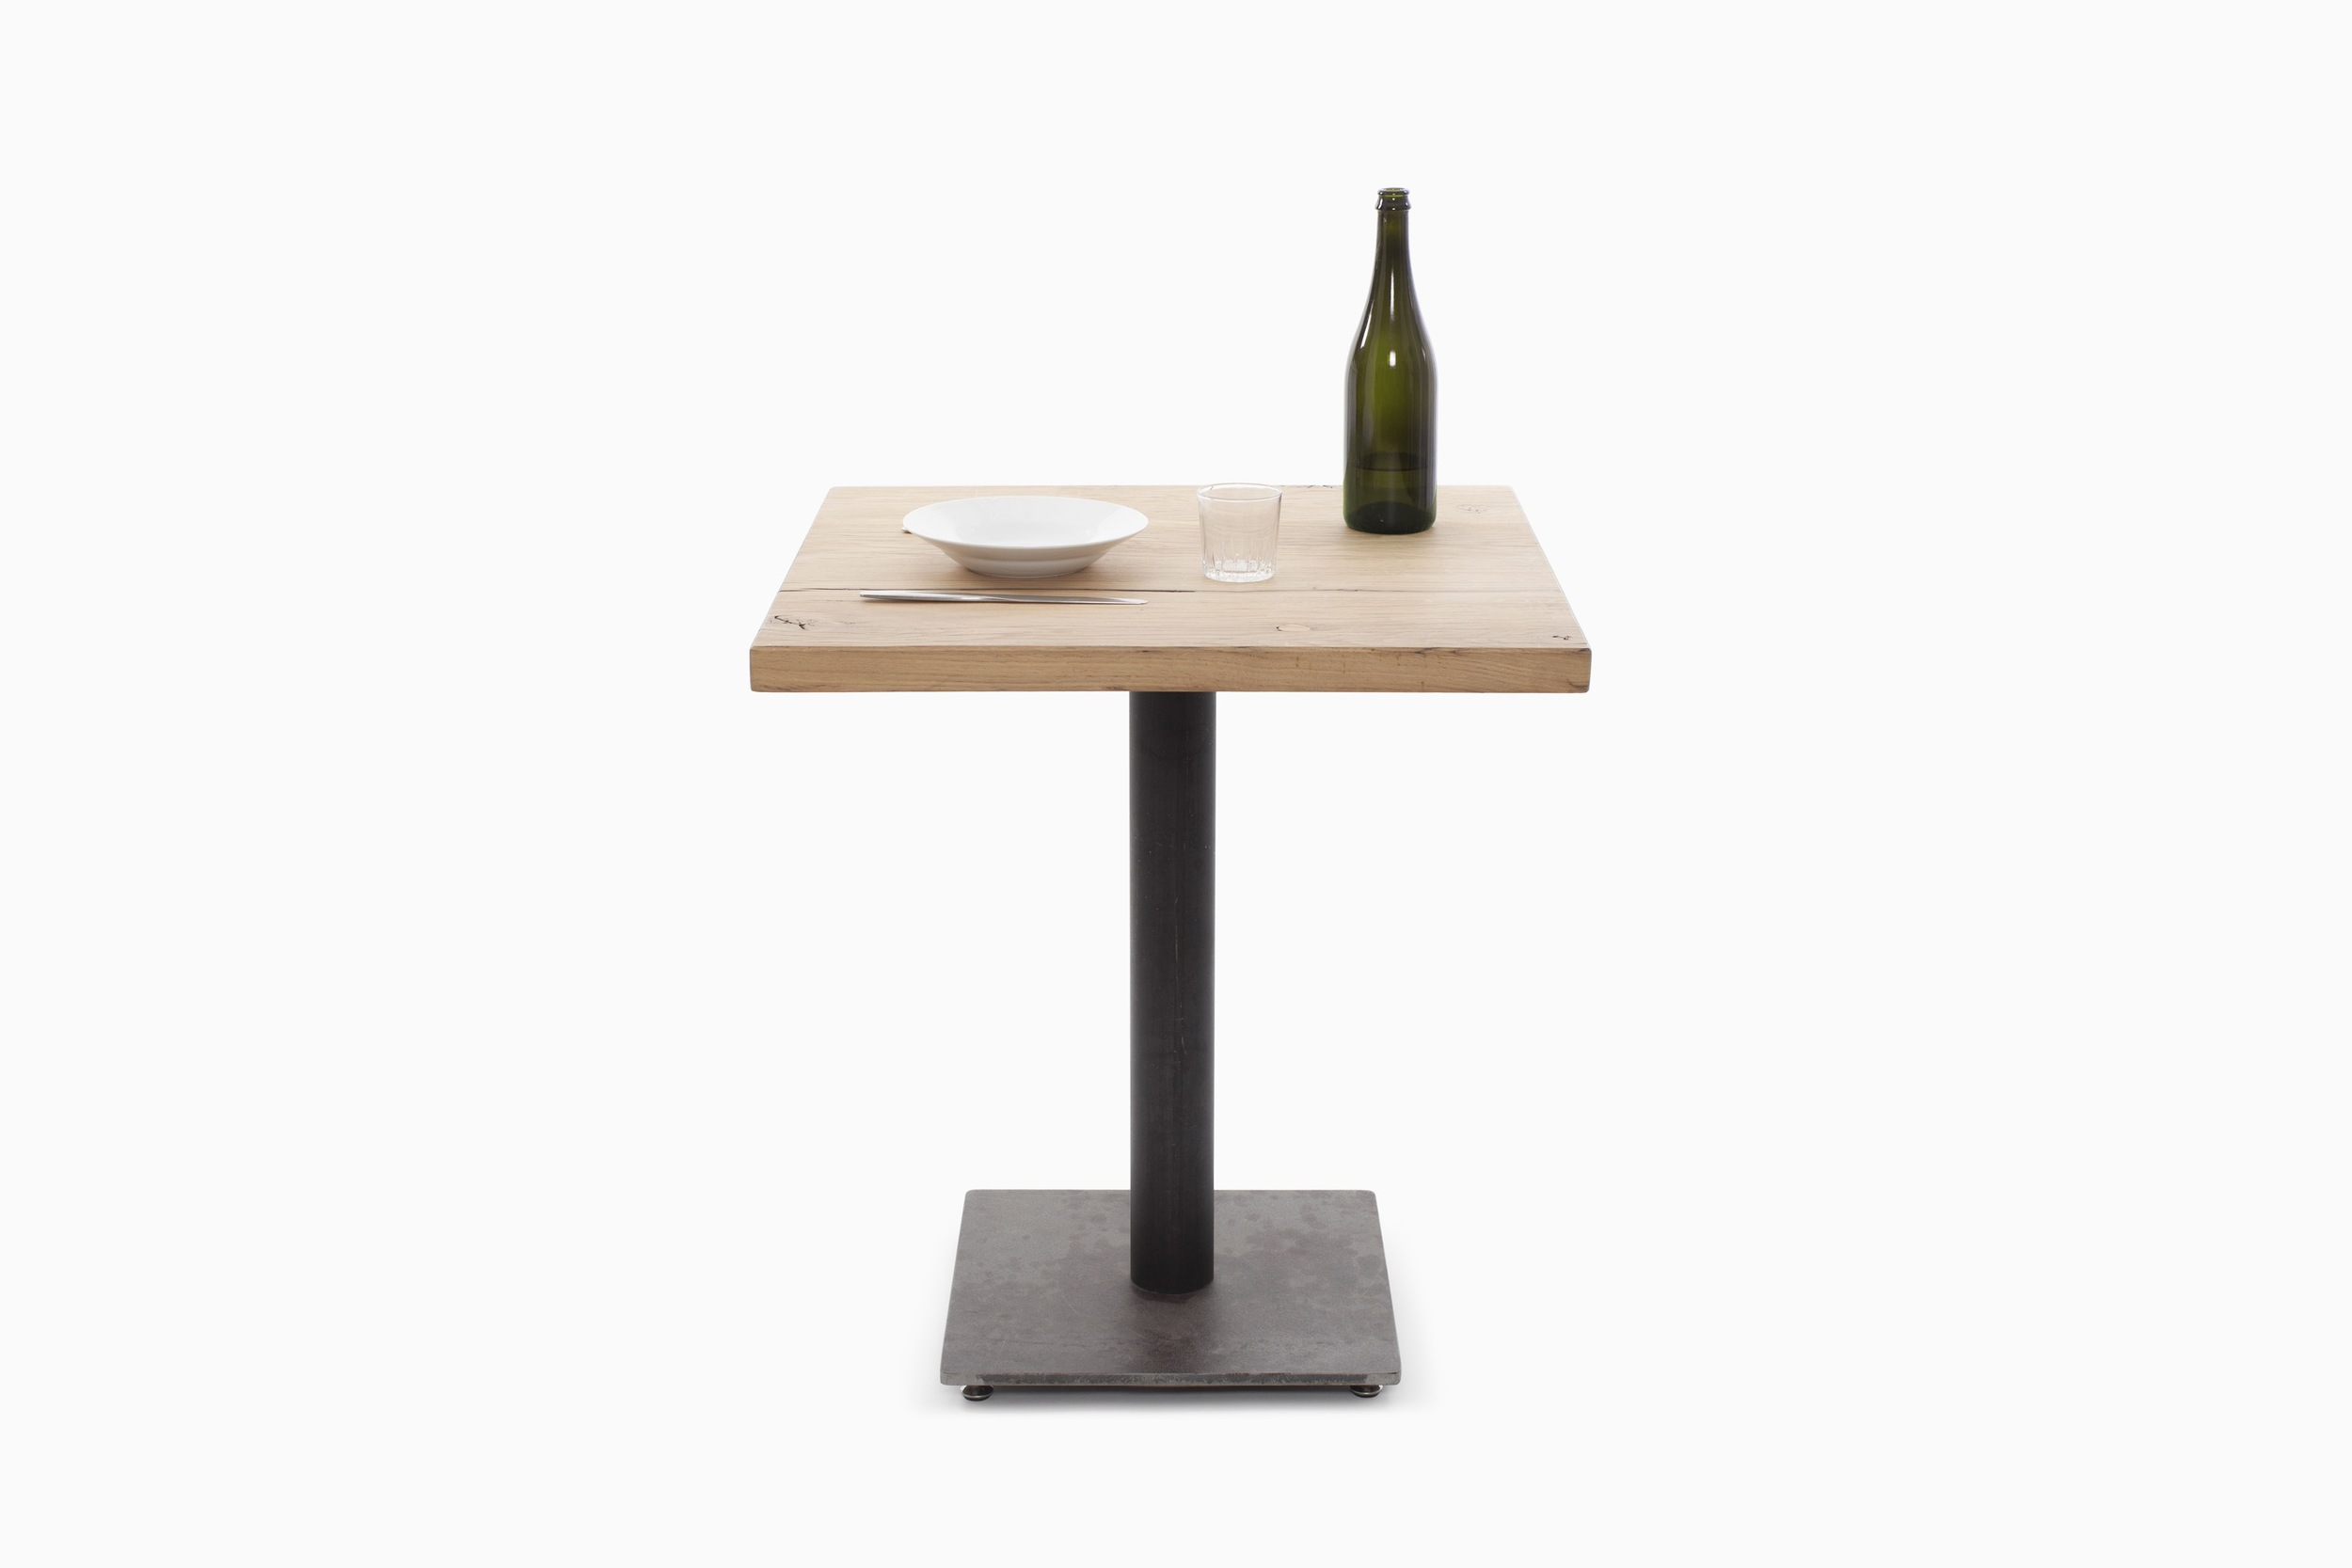 TIMBER_TABLE_BISTROT_01.05.jpg